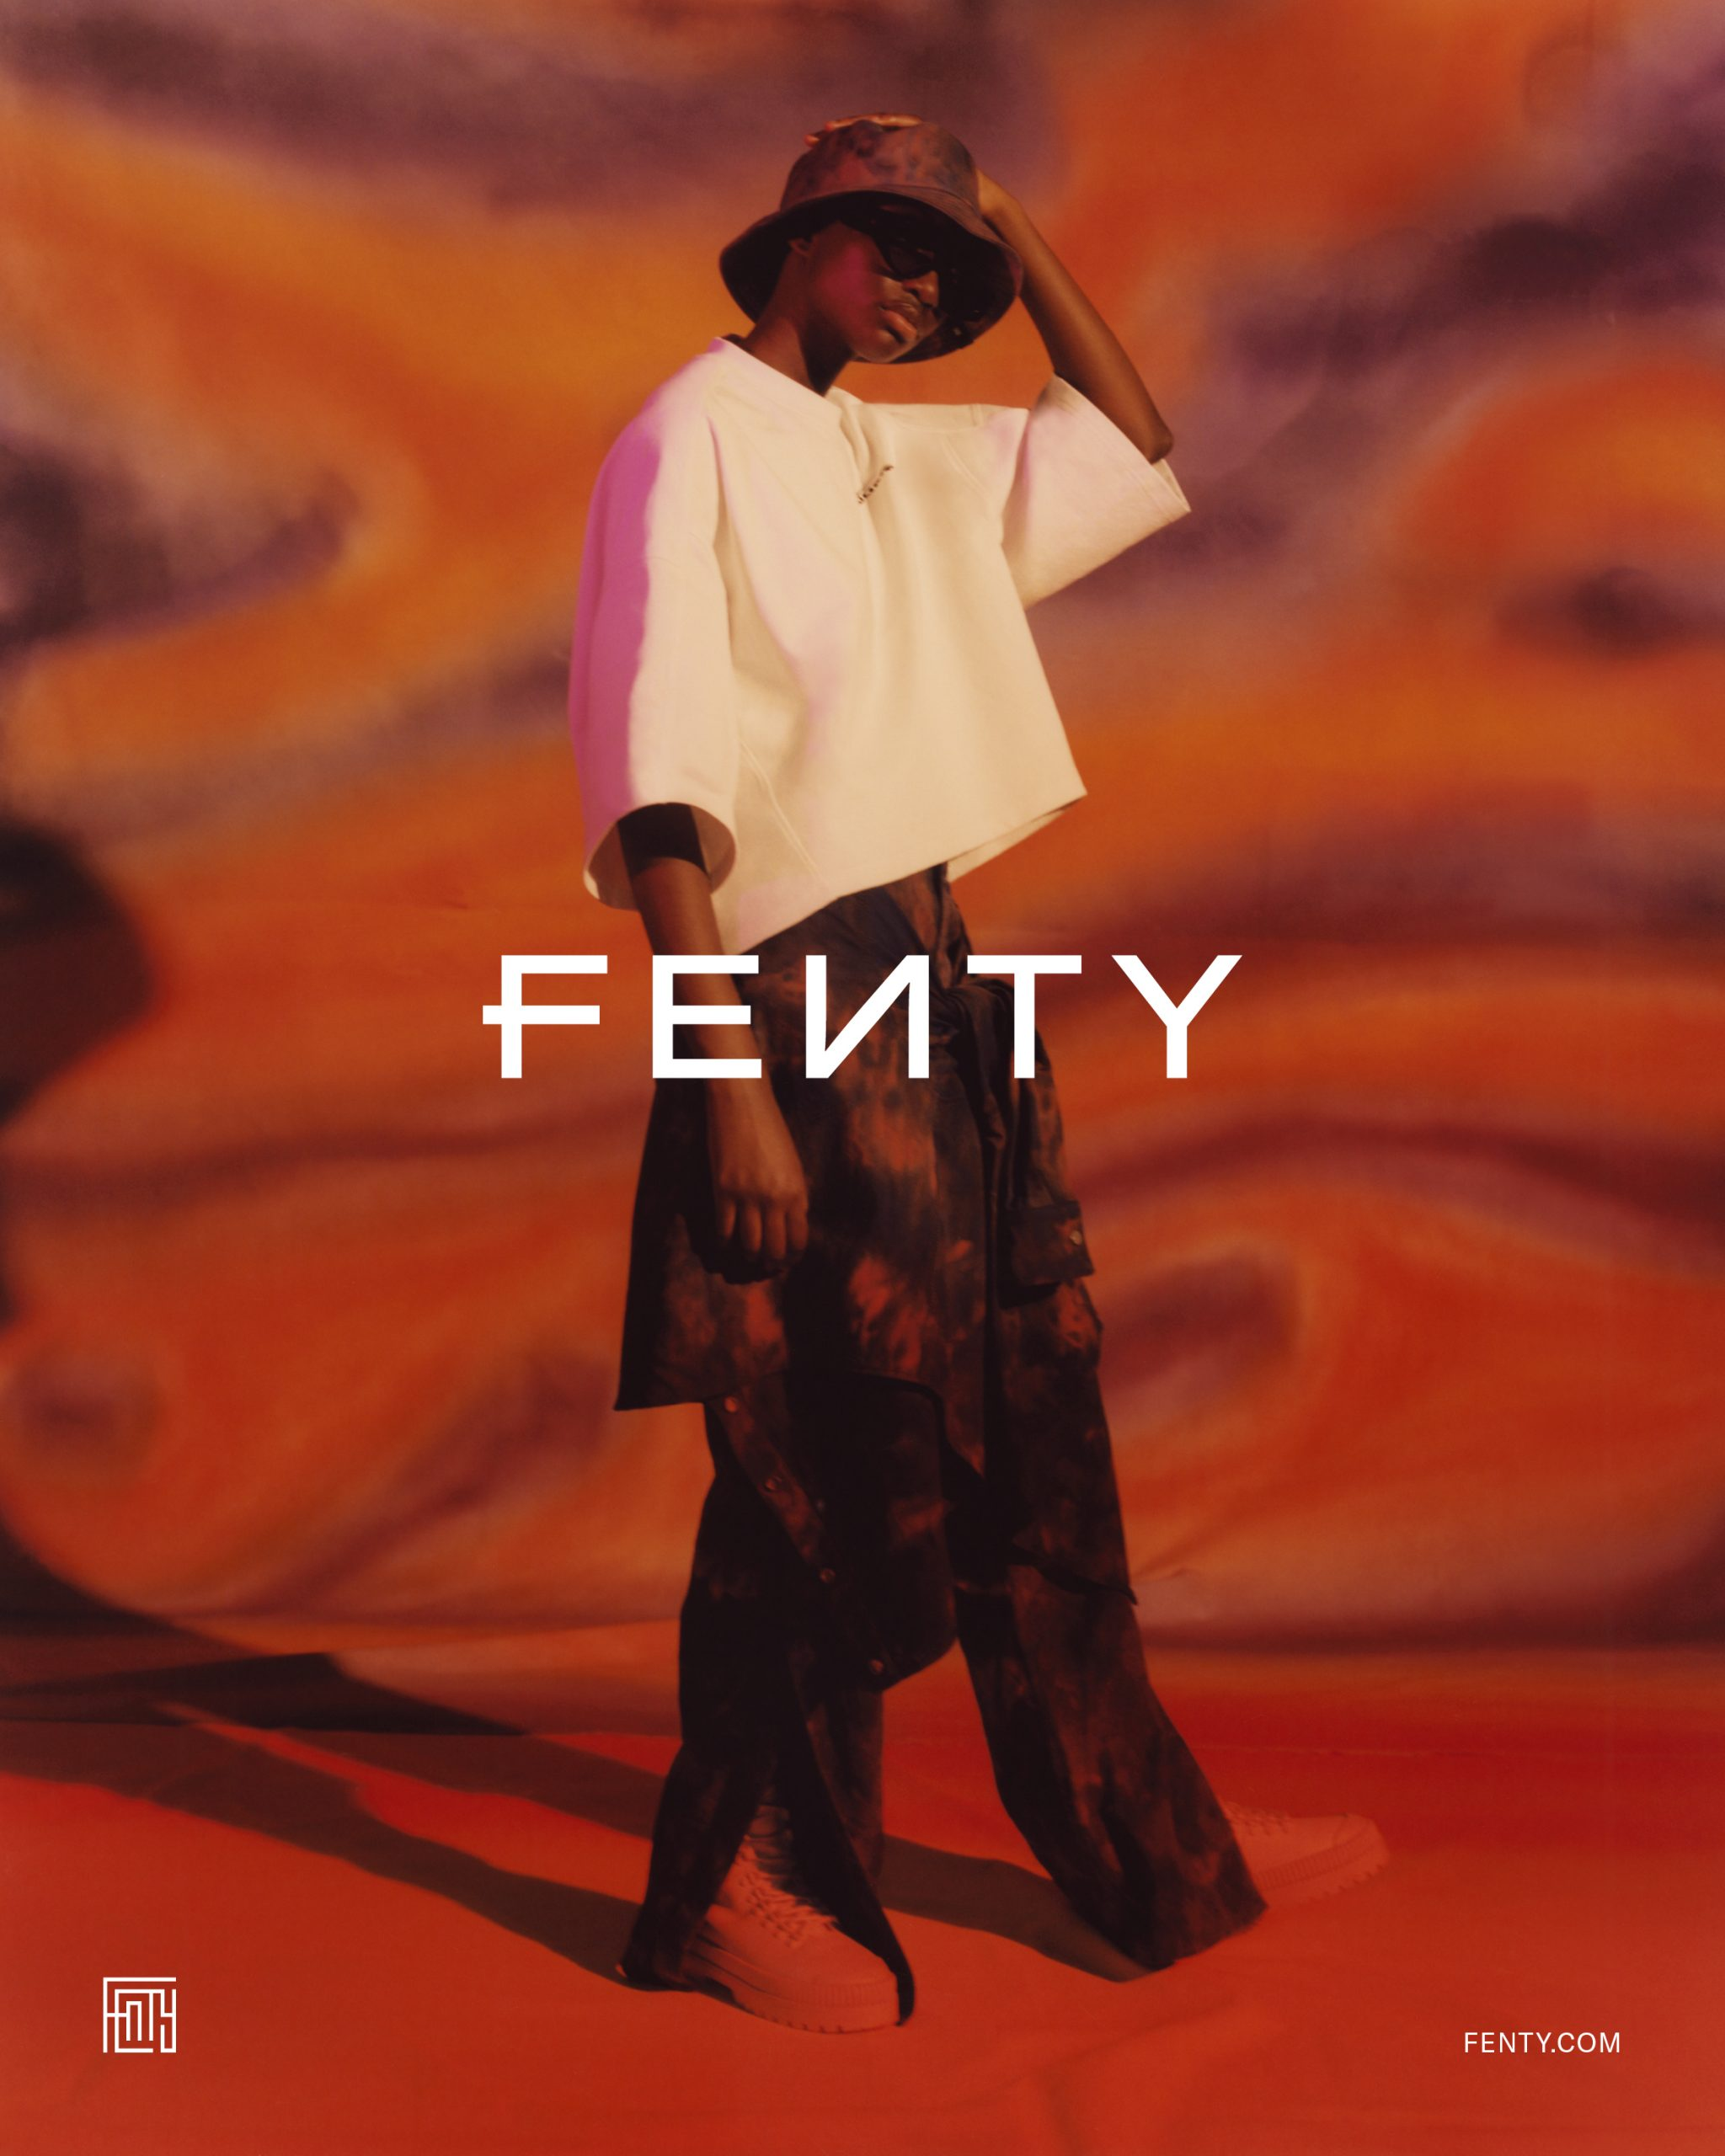 Fenty Drop Two Summer 2020 Ad Campaign Photo and film